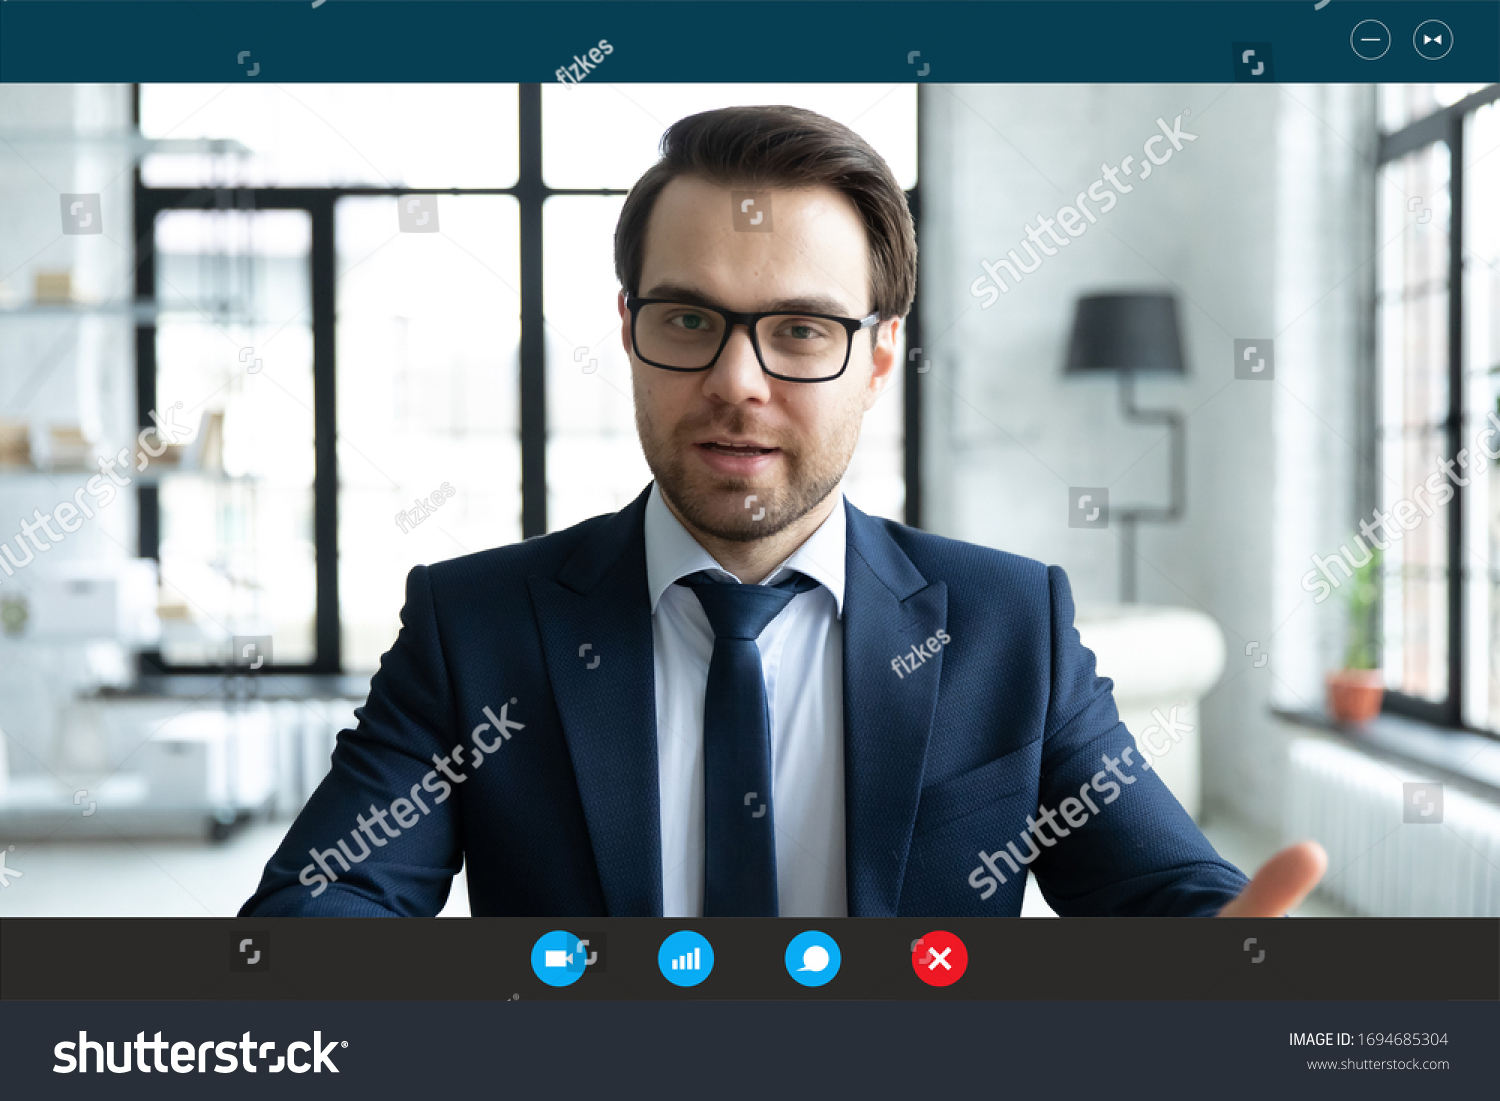 Head shot employer lead job interview with applicant laptop screen teleconference app view. Businessman talk with client by video call communicating distantly use modern videoconference and pc concept #1694685304